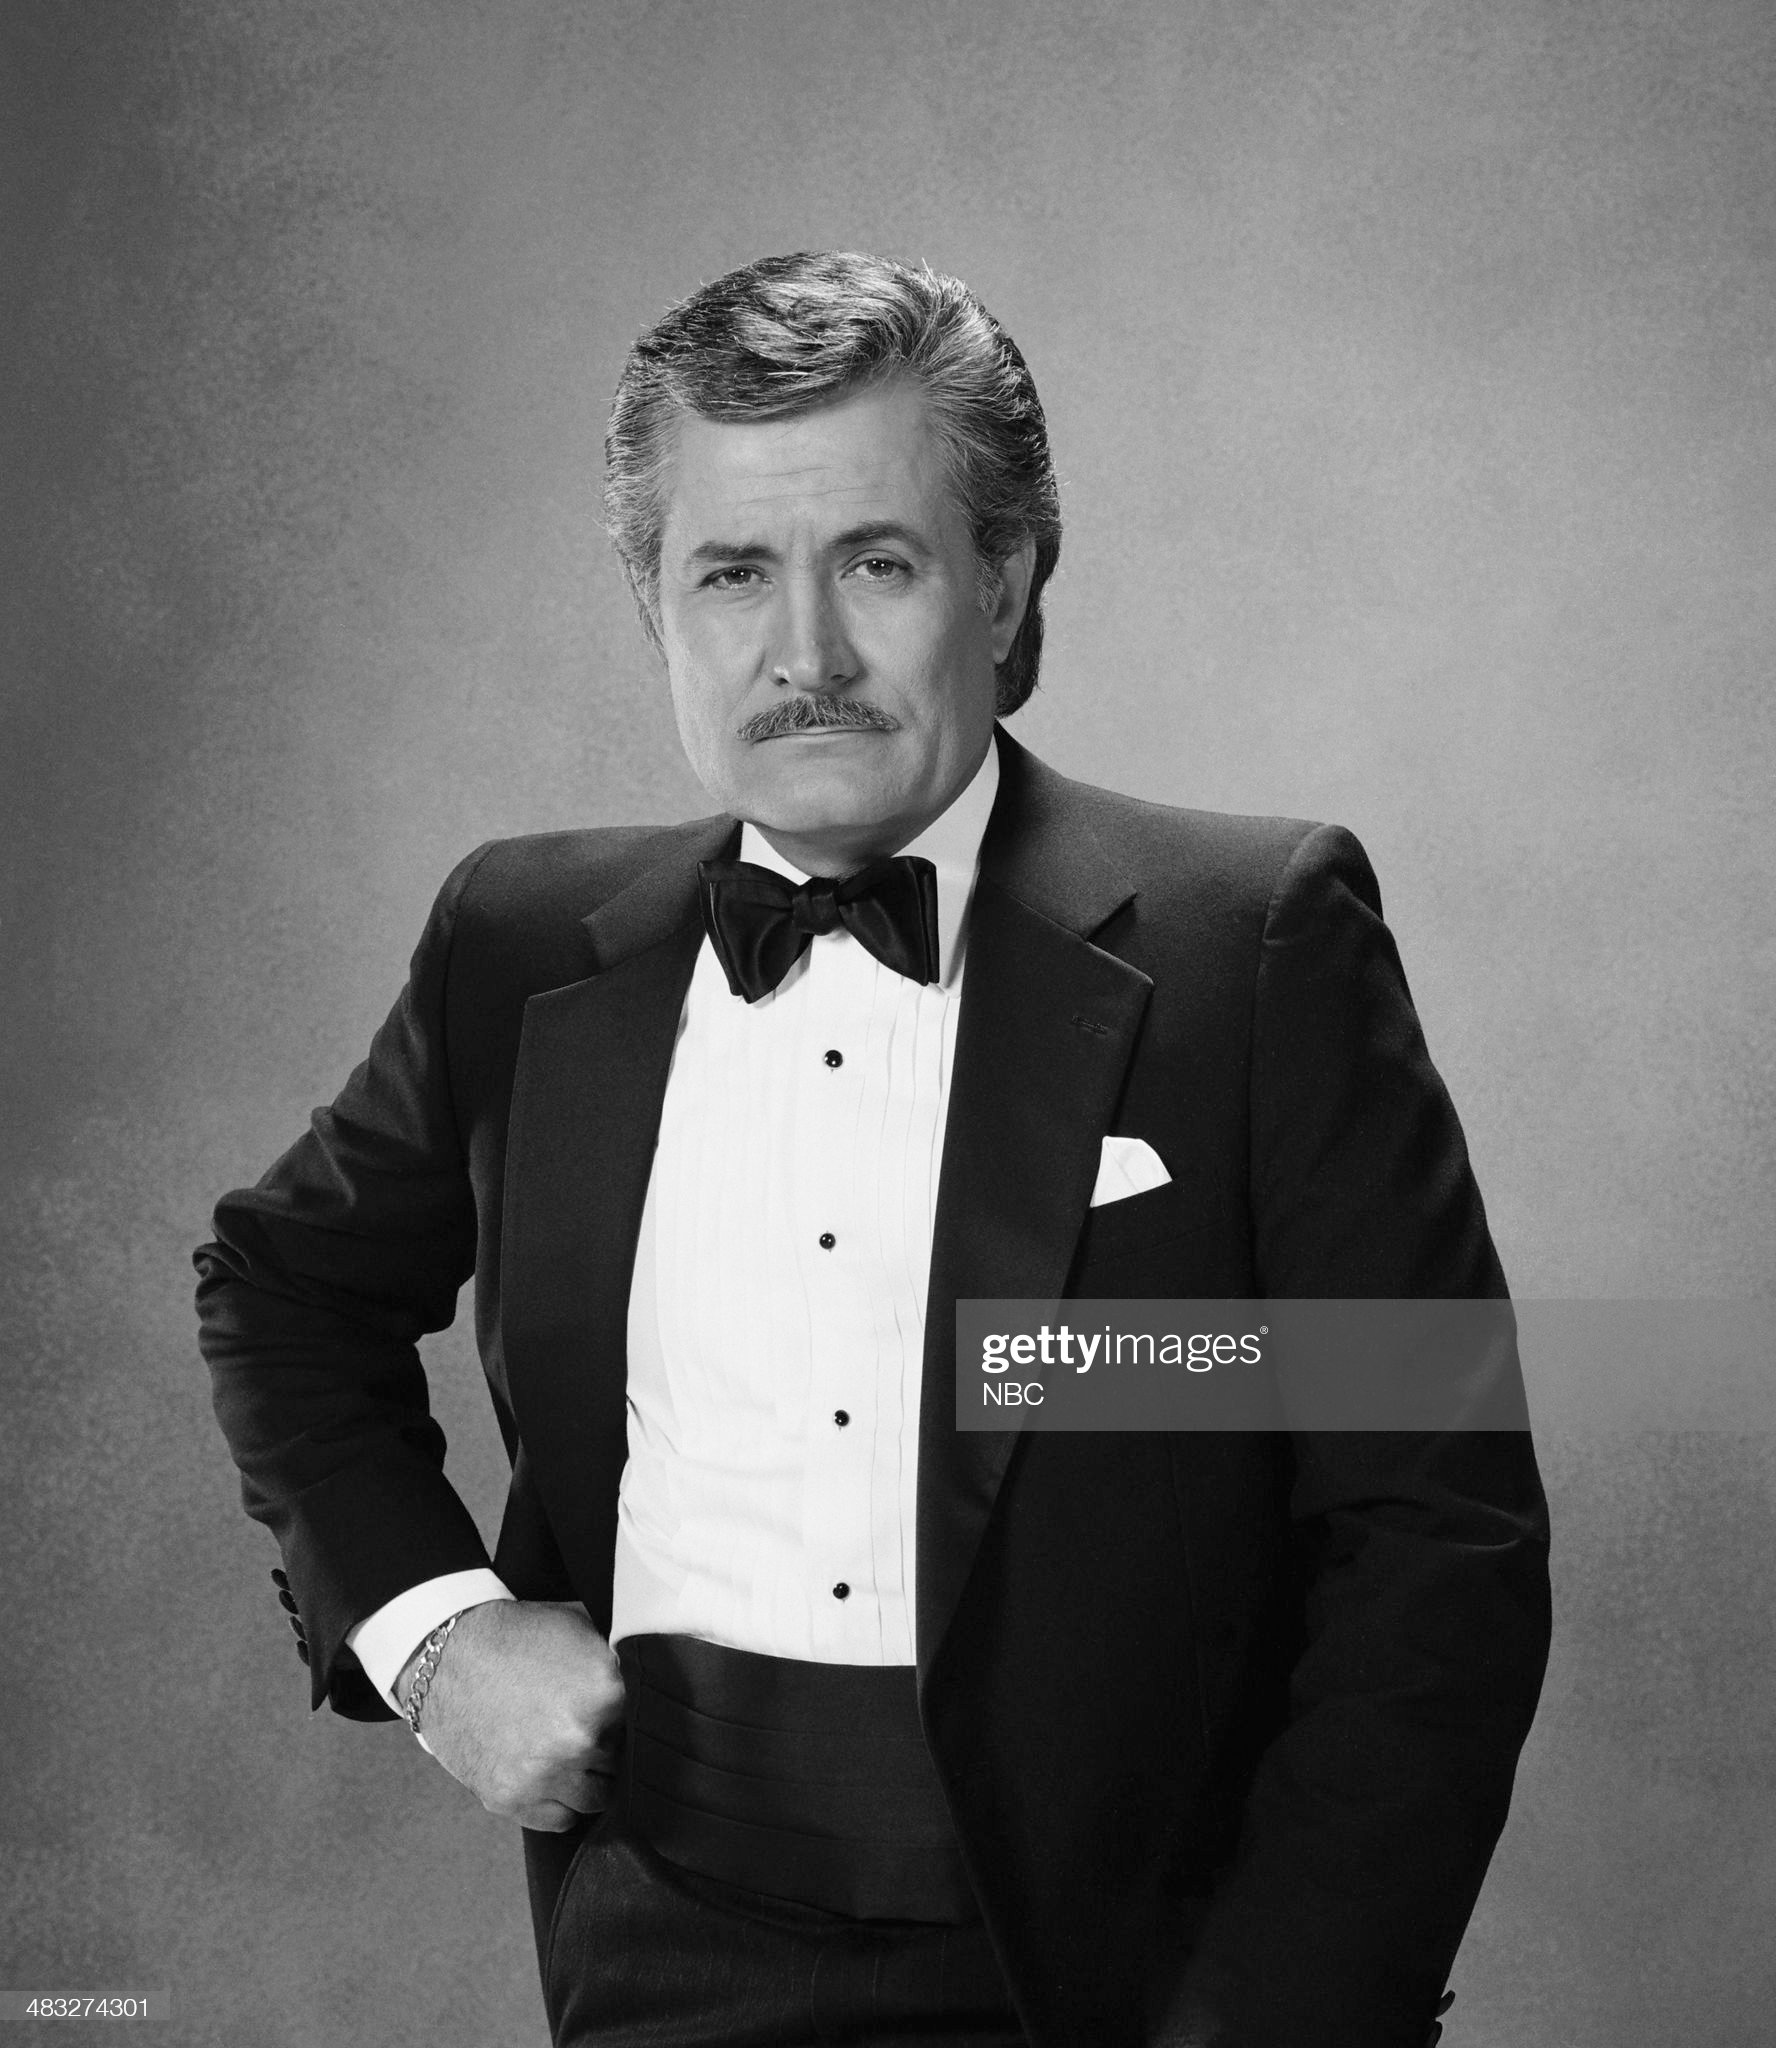 pictured-john-aniston-as-victor-kiriakis-picture-id483274301